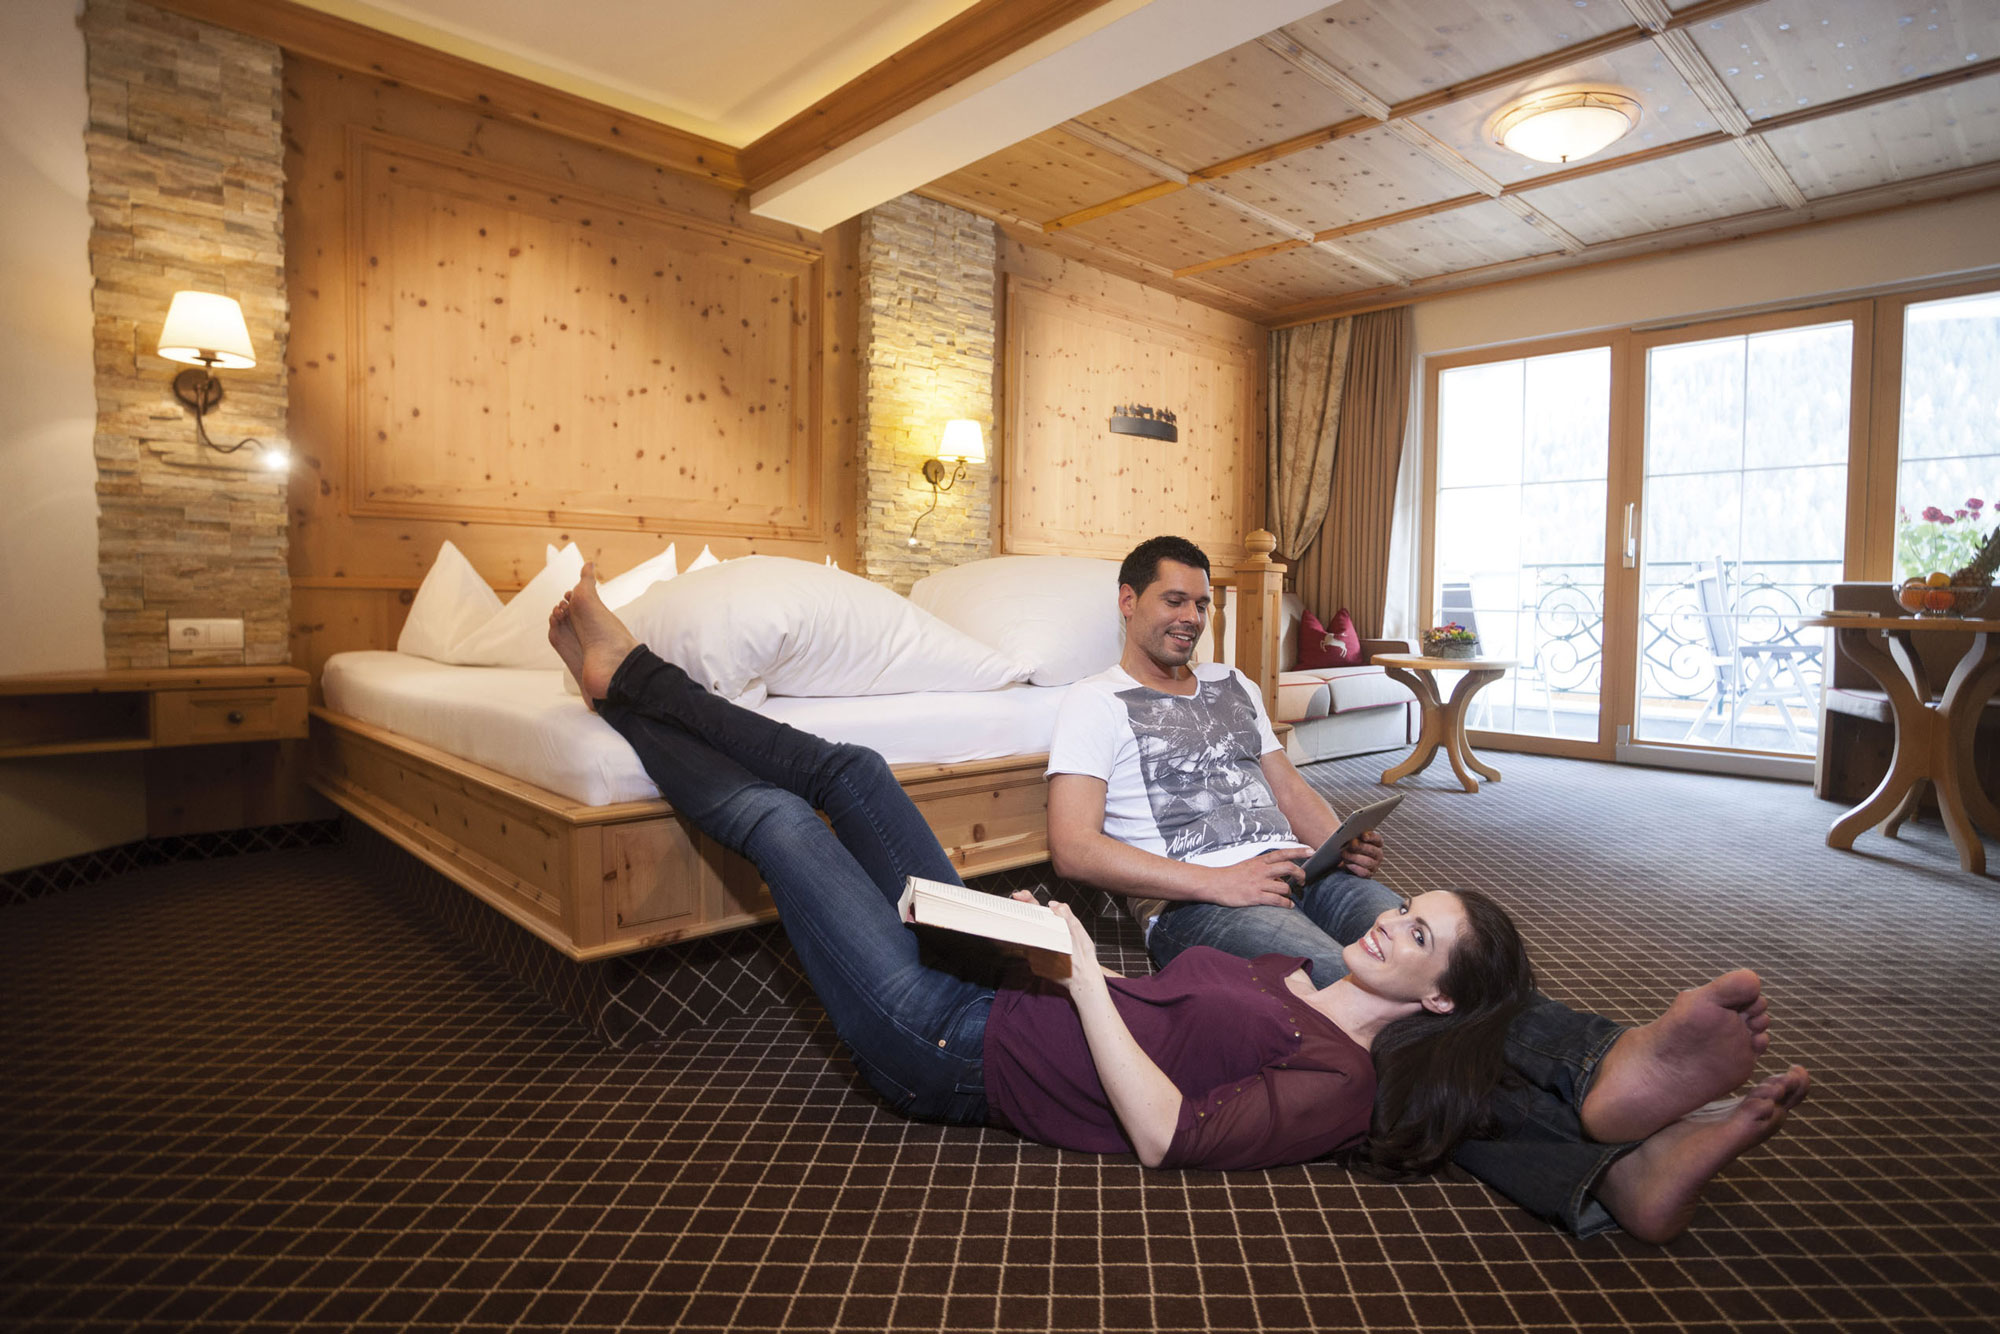 Relaxing holidays at the Hotel Kindl in the Stubai Valley